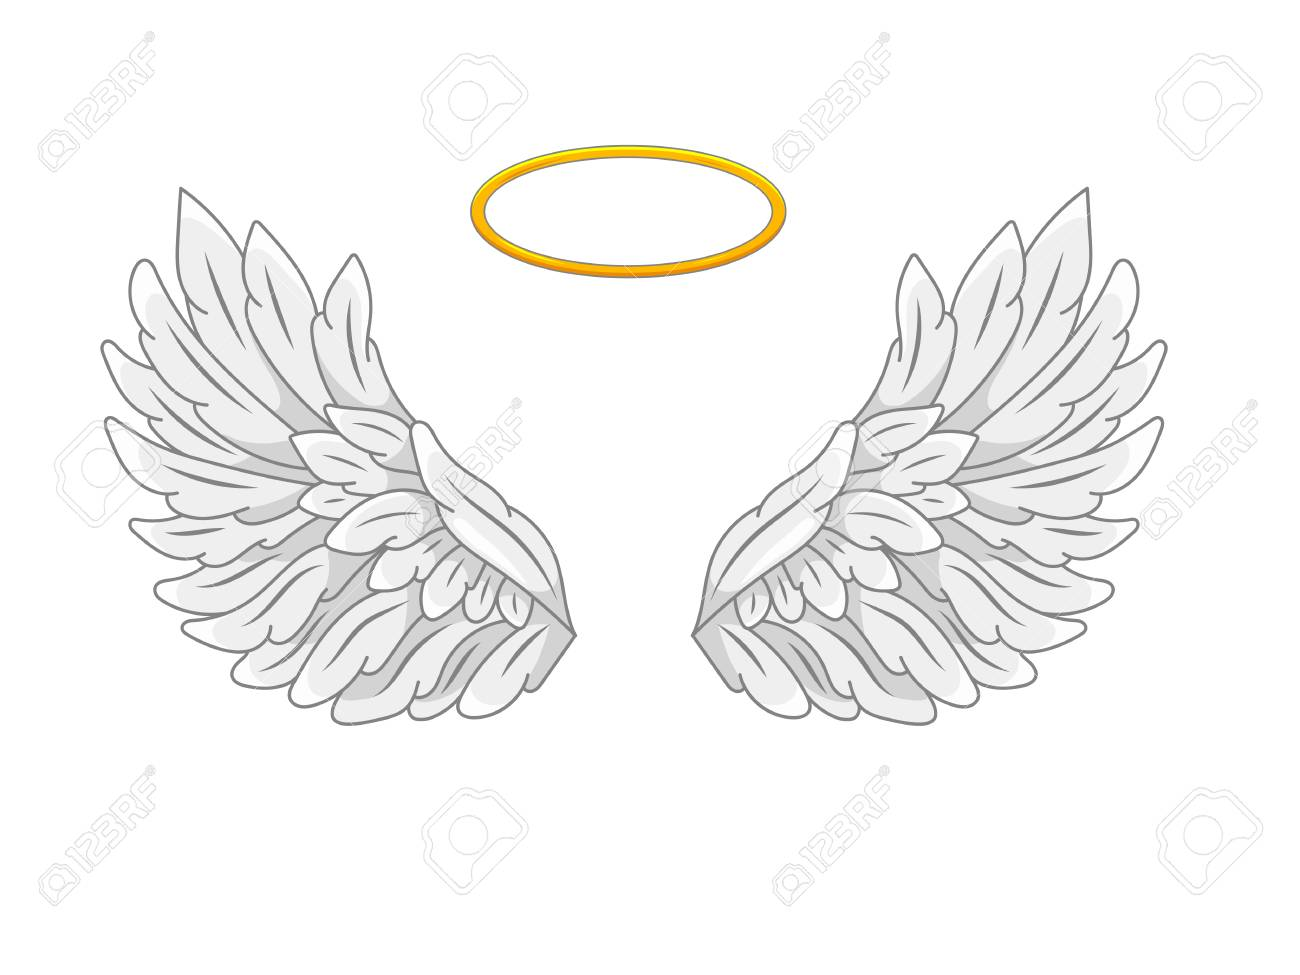 234bd8132 A pair of wide spread angel wings with golden halo or nimbus. Grey and white